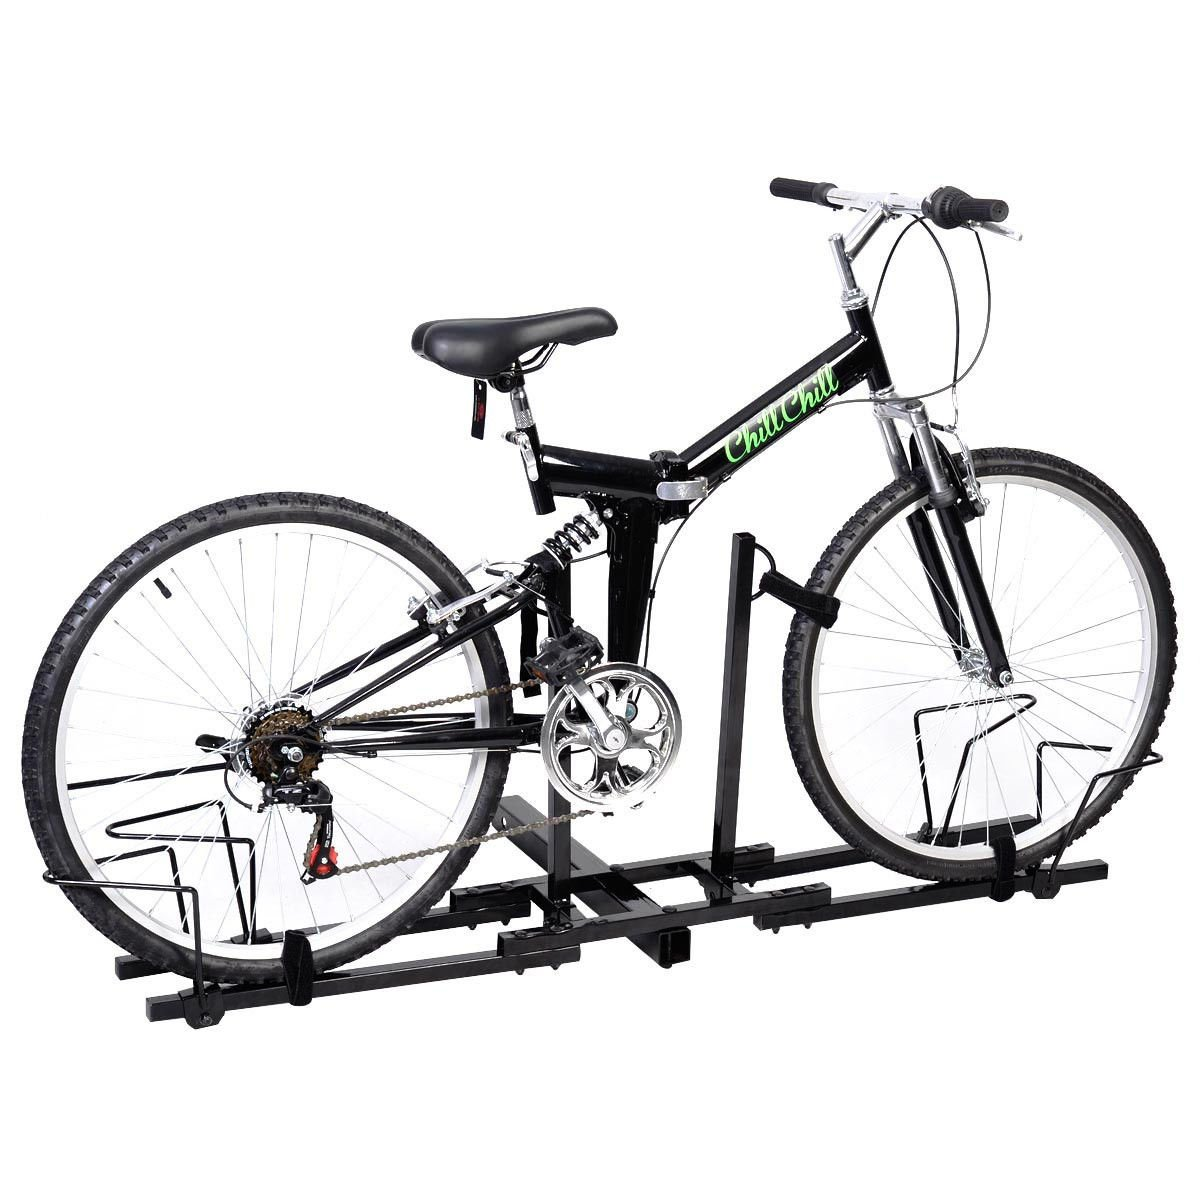 Super buy Upright Heavy Duty 2 Bike Bicycle Hitch Mount Carrier Platform Rack Truck SUV by Super buy (Image #2)